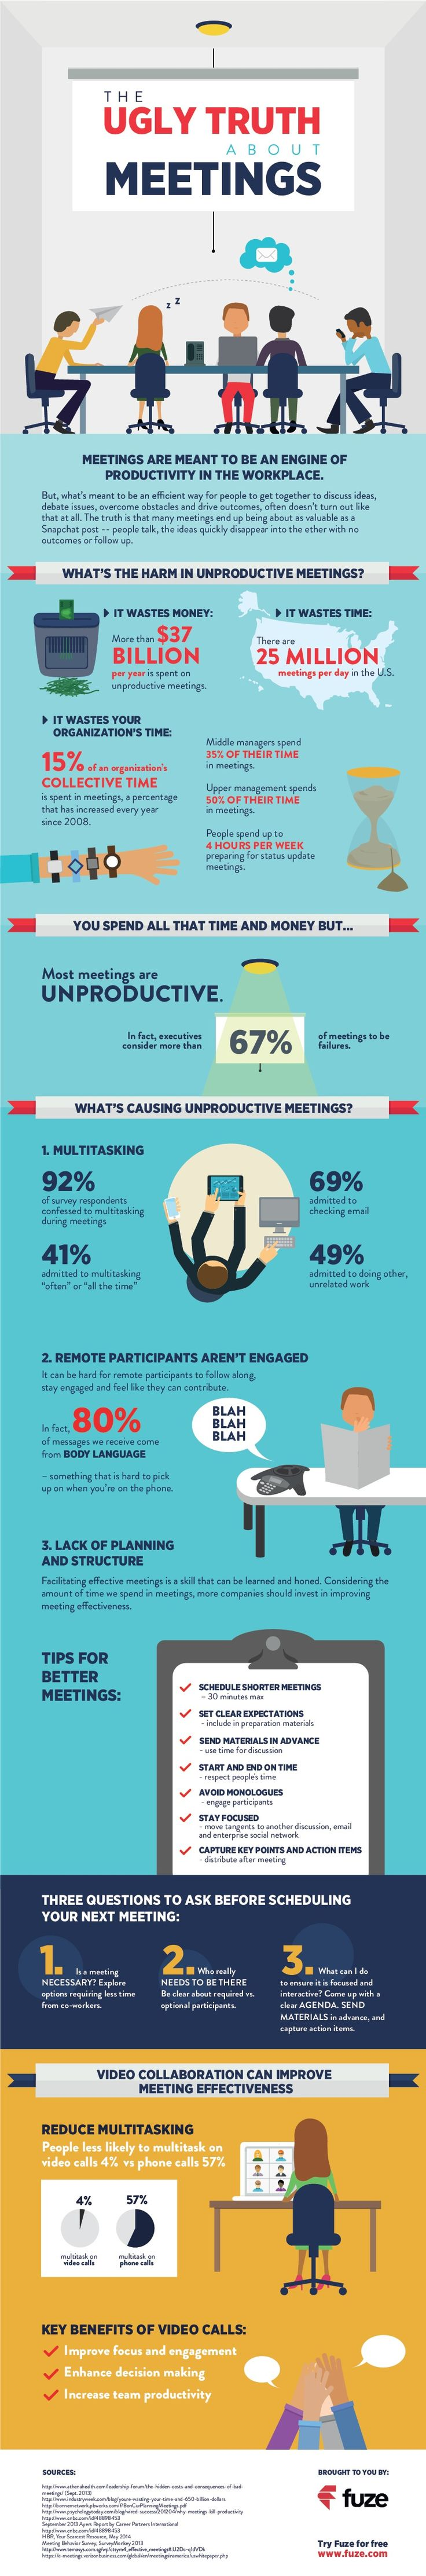 Meetings. Does anyone like them? We never want to be part of them, but what's the ugly truth about them? They are meant to be the engine of the productivity but the reality is sometimes the opposite. And still: making effective and efficient meetings isn't so hard!